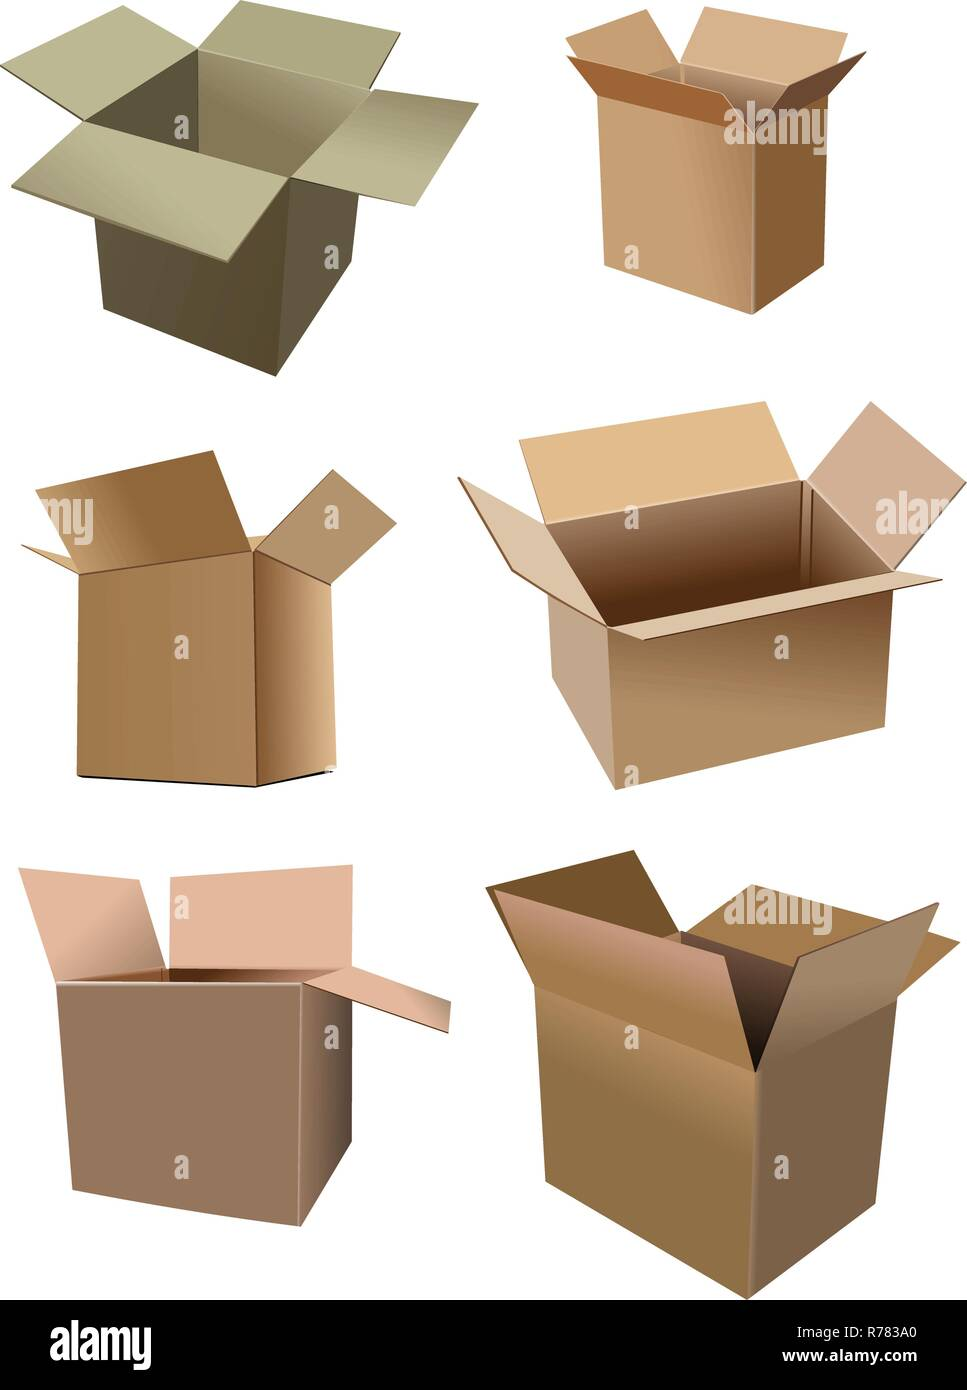 Set of carton boxes isolated over a white background. vector illustration - Stock Vector